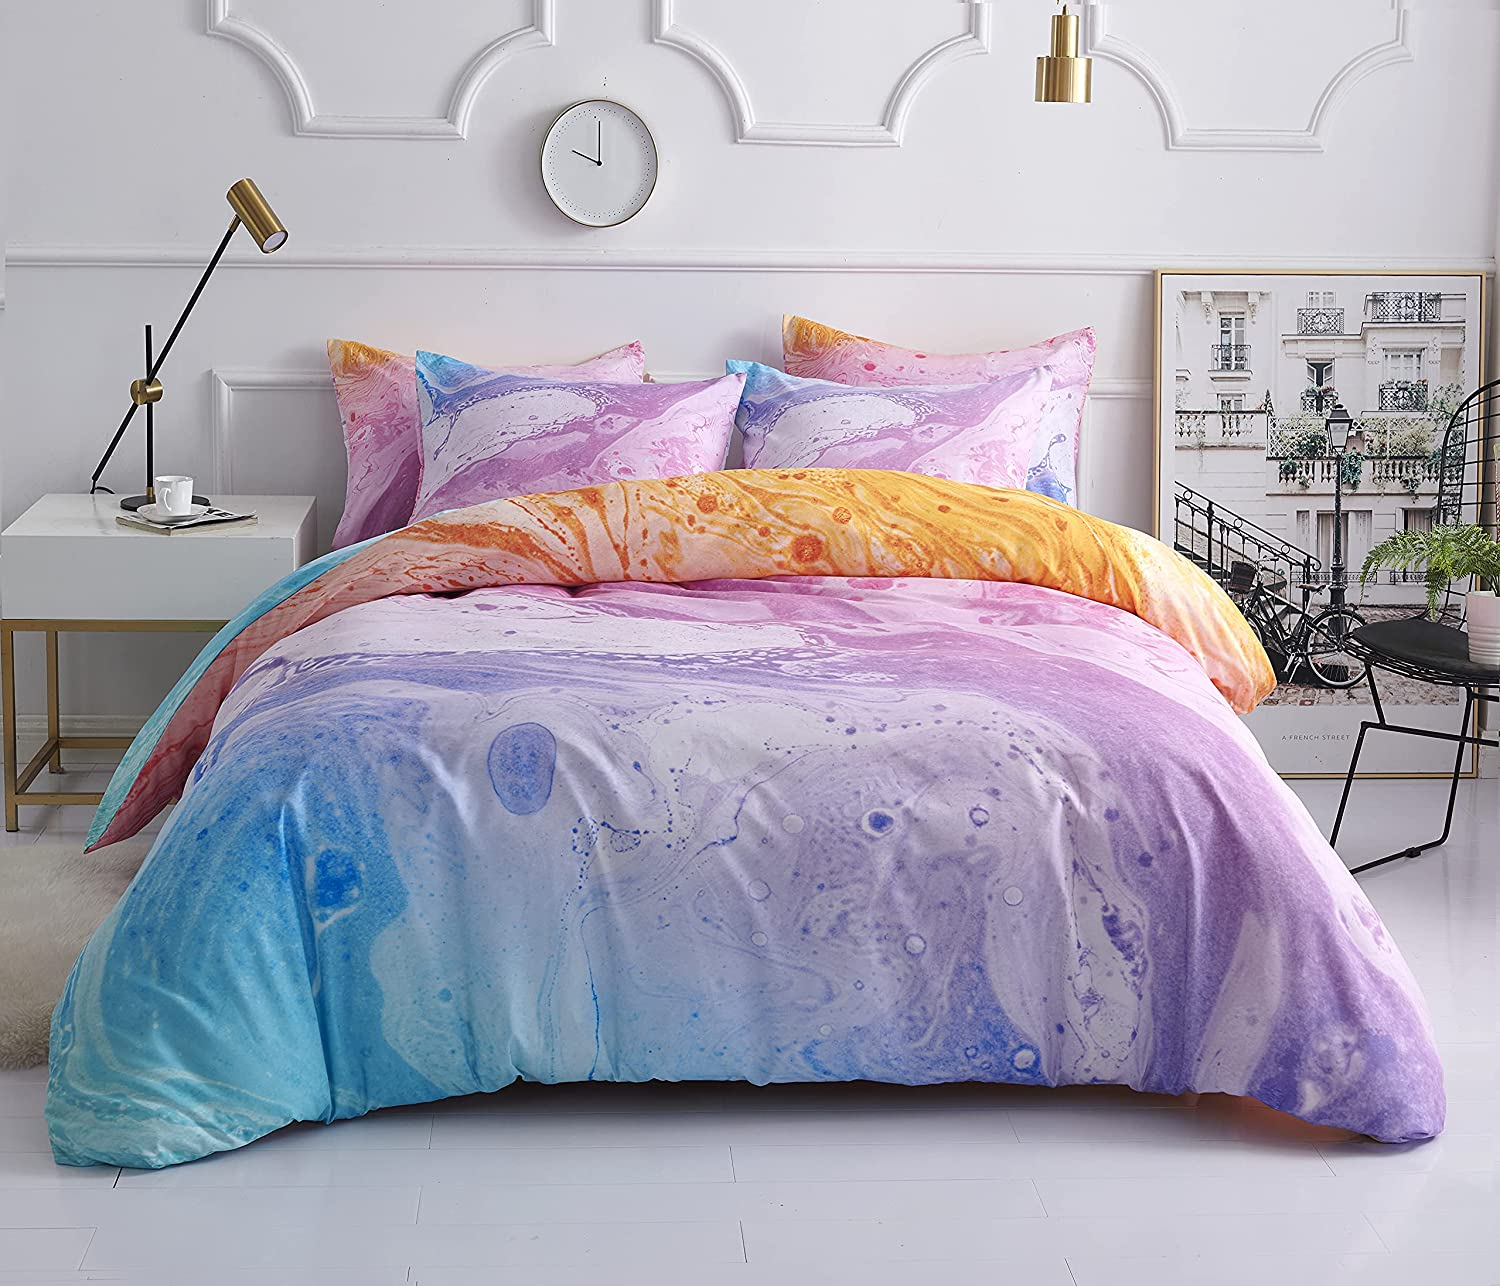 Tie Dye Ranking TOP19 Duvet Cover Queen Size 100% Comfo Microfiber Washed New arrival Set